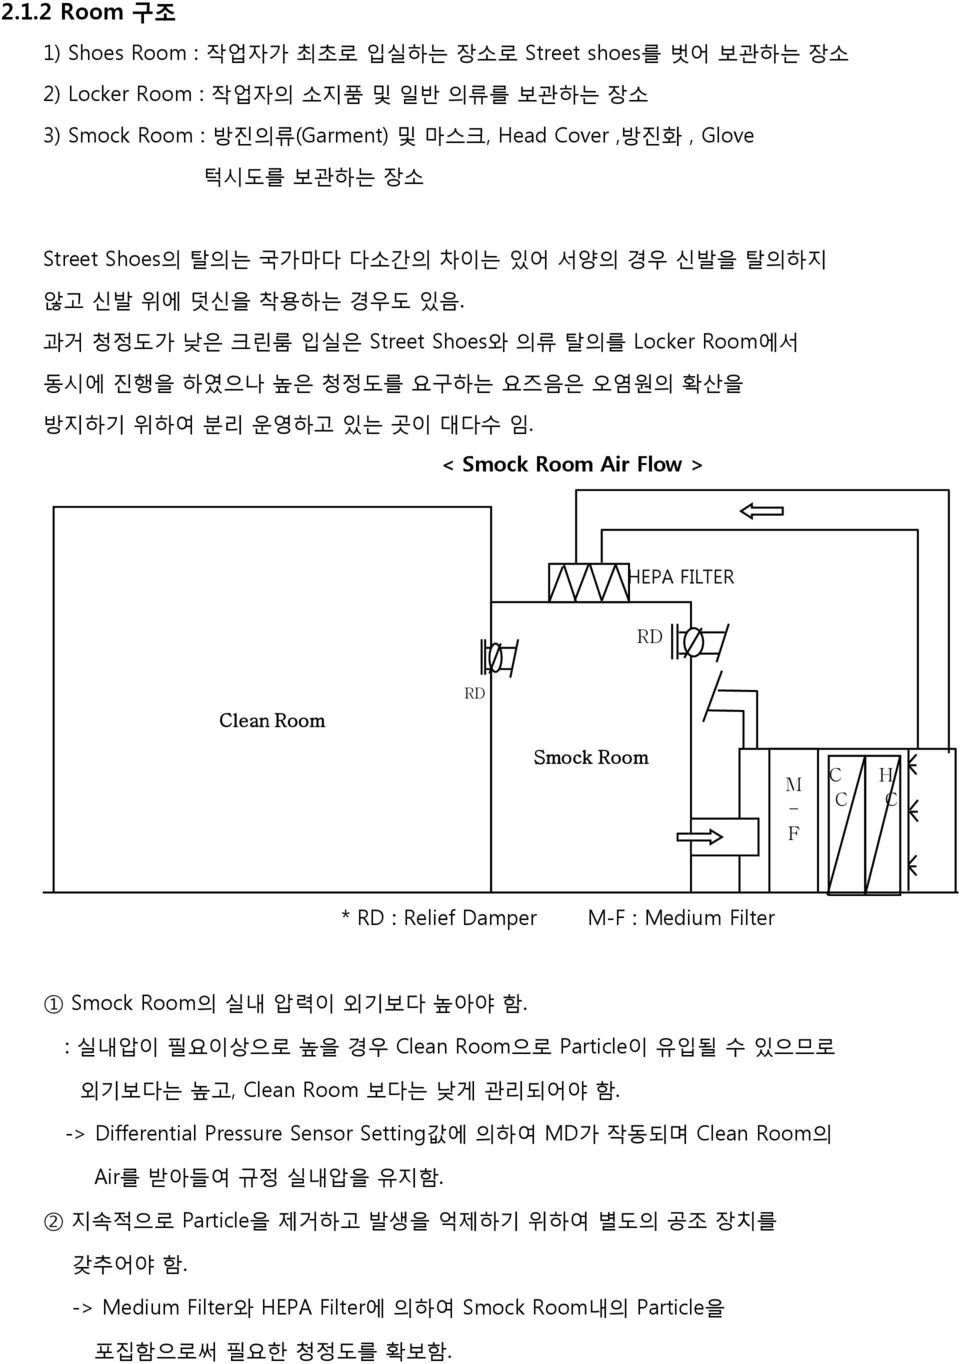 < Smock Room Air Flow > HEPA FILTER RD Clean Room RD Smock Room M - F C C H C * RD : Relief Damper M-F : Medium Filter 1 Smock Room의 실내 압력이 외기보다 높아야 함.